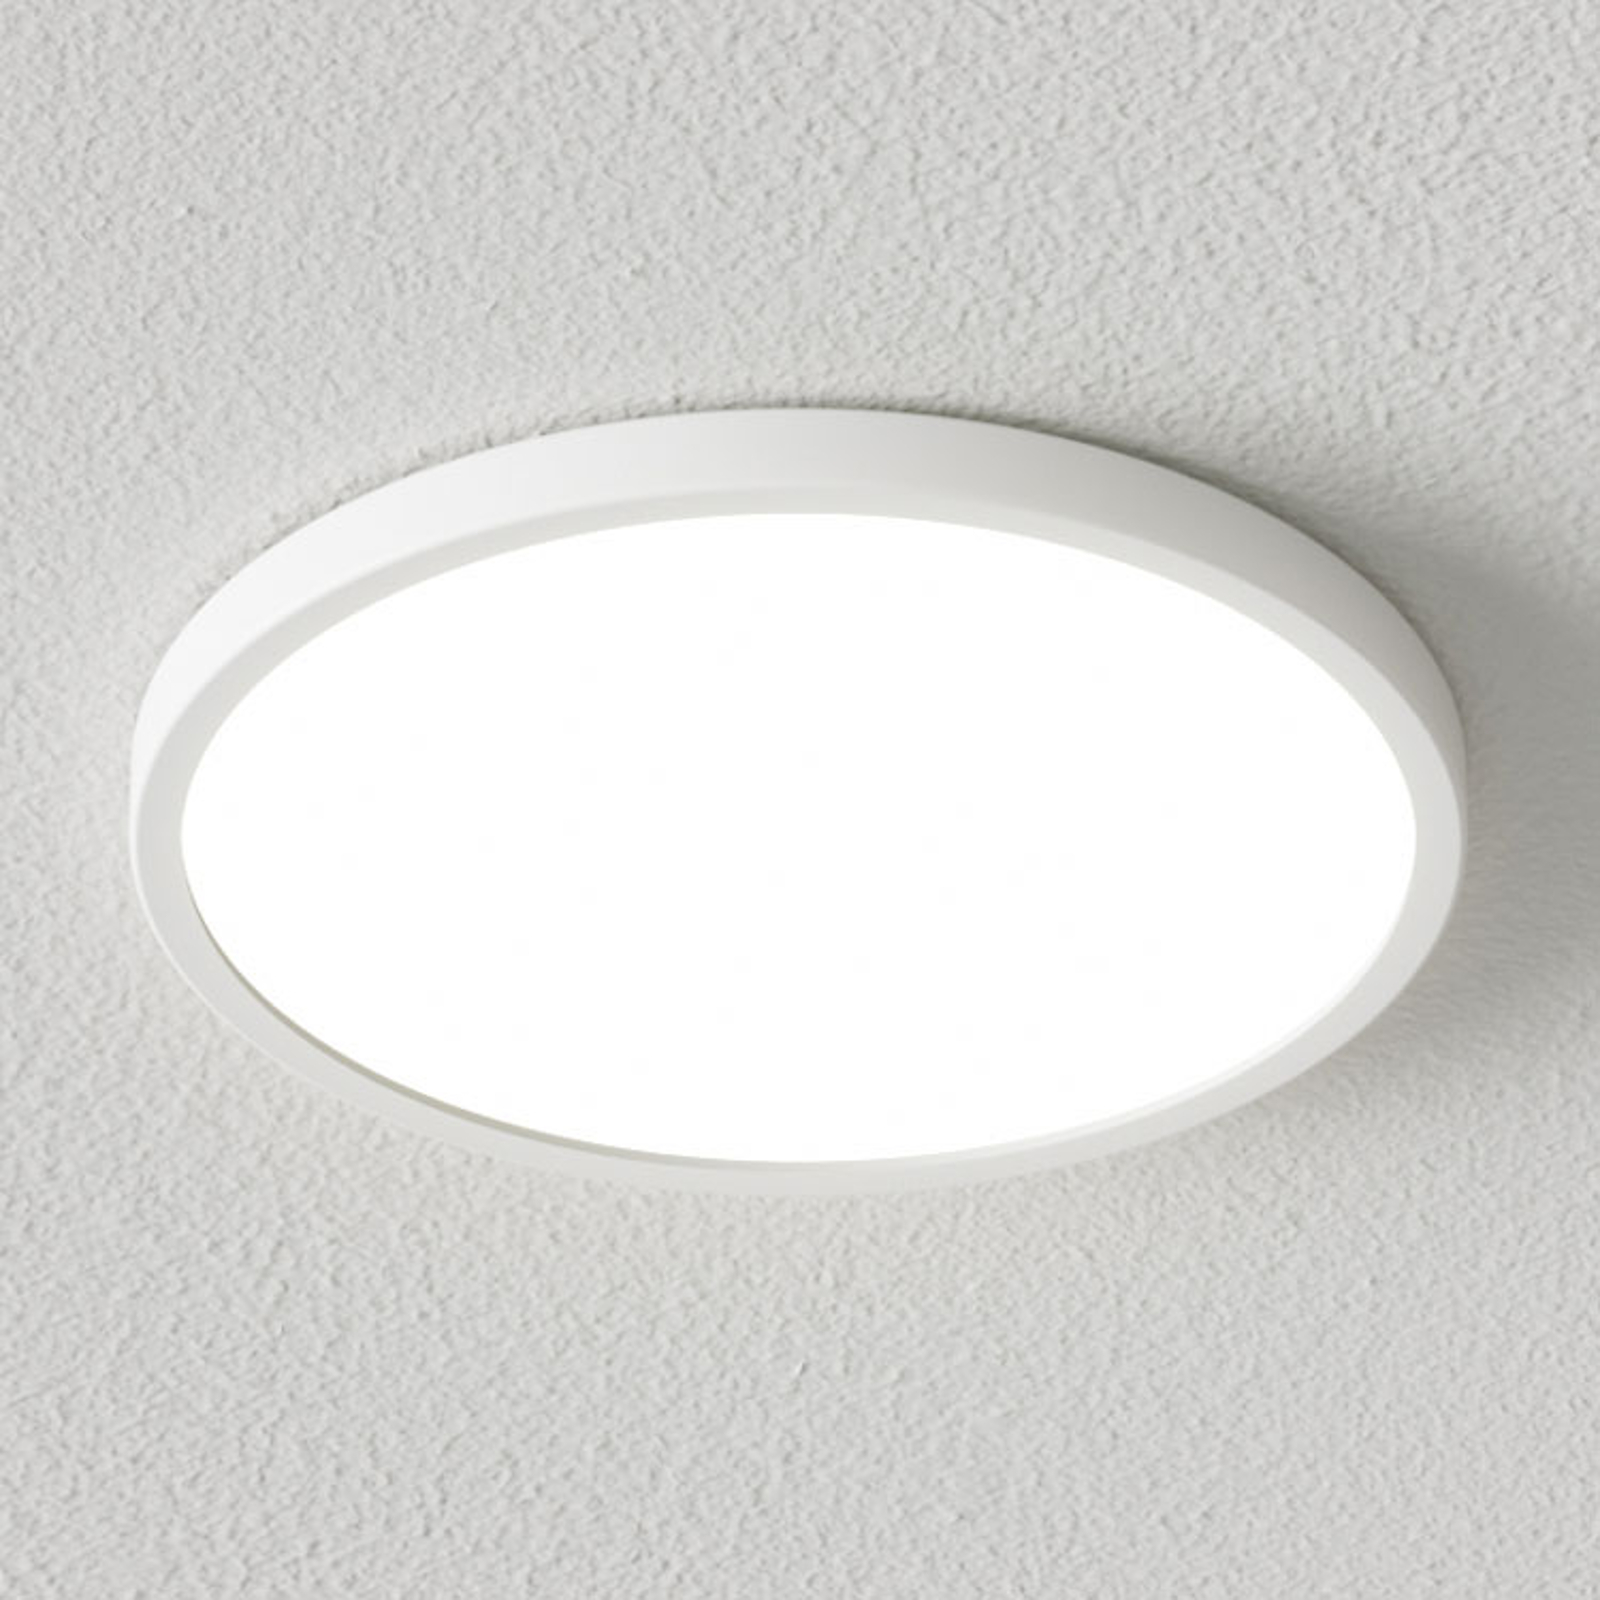 Dimmable LED ceiling lamp Solvie in white_9621703_1